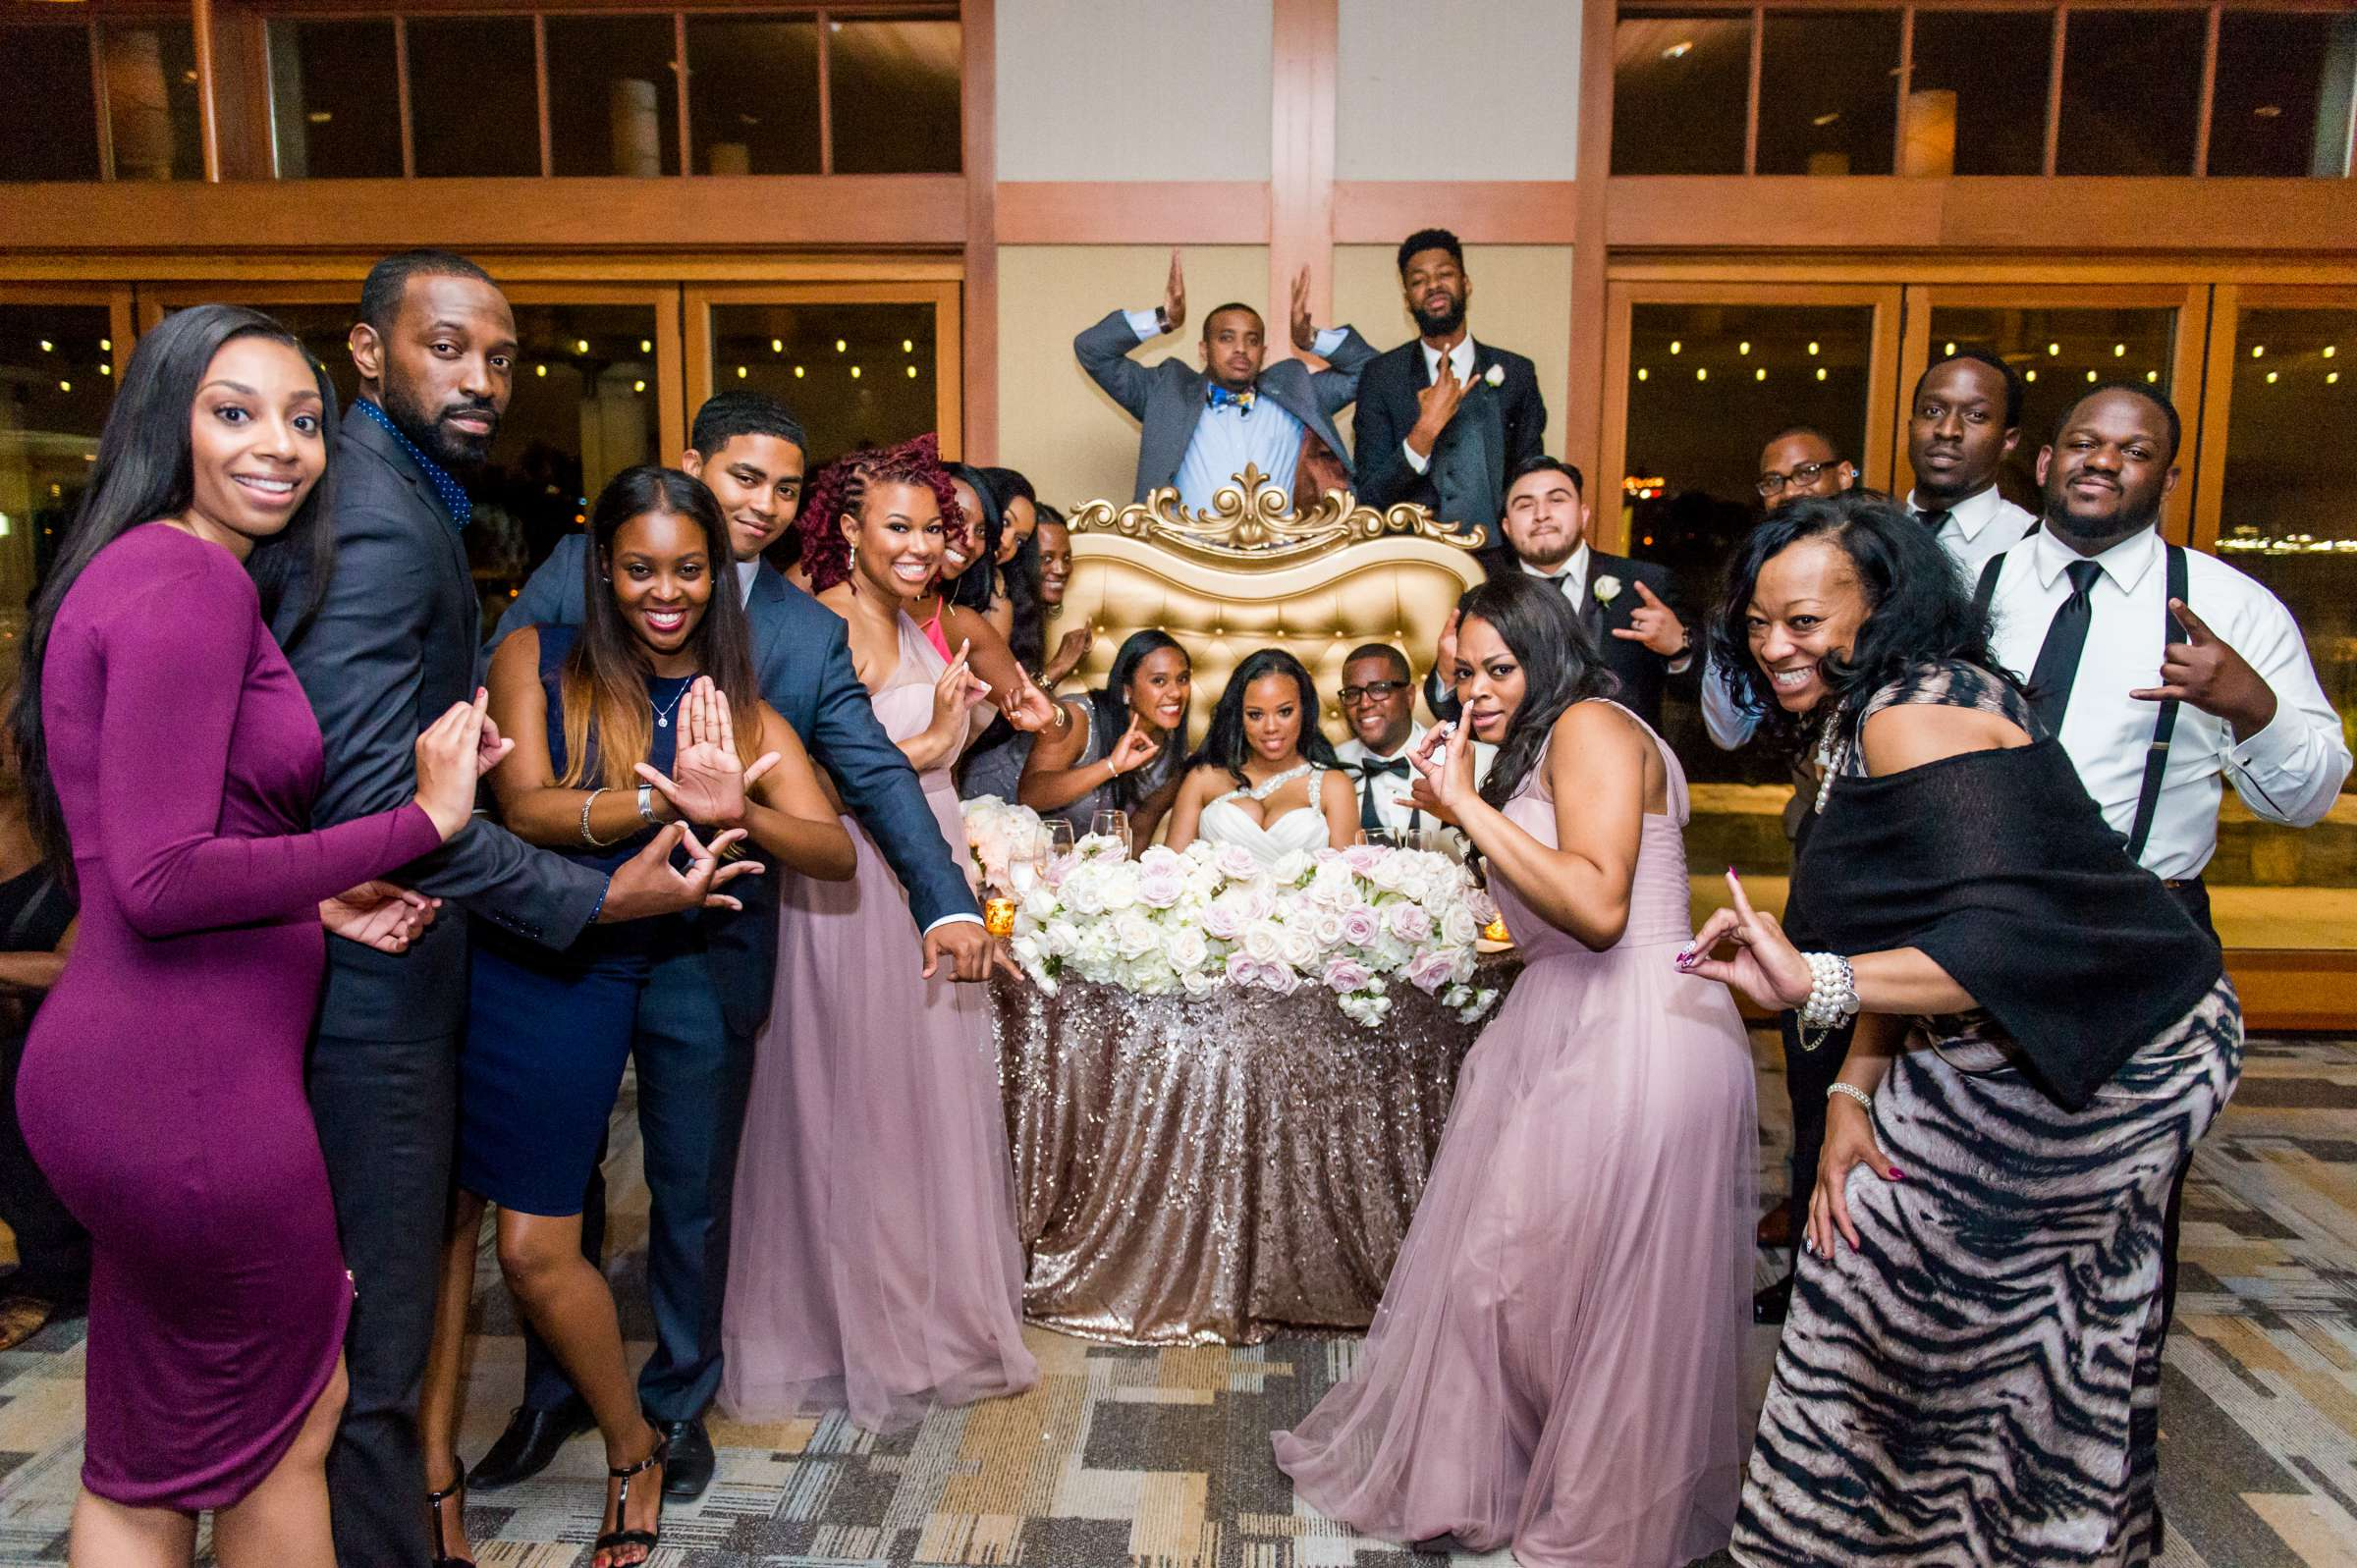 Coronado Community Center Wedding coordinated by First Comes Love Weddings & Events, Nikia and Charles Wedding Photo #103 by True Photography